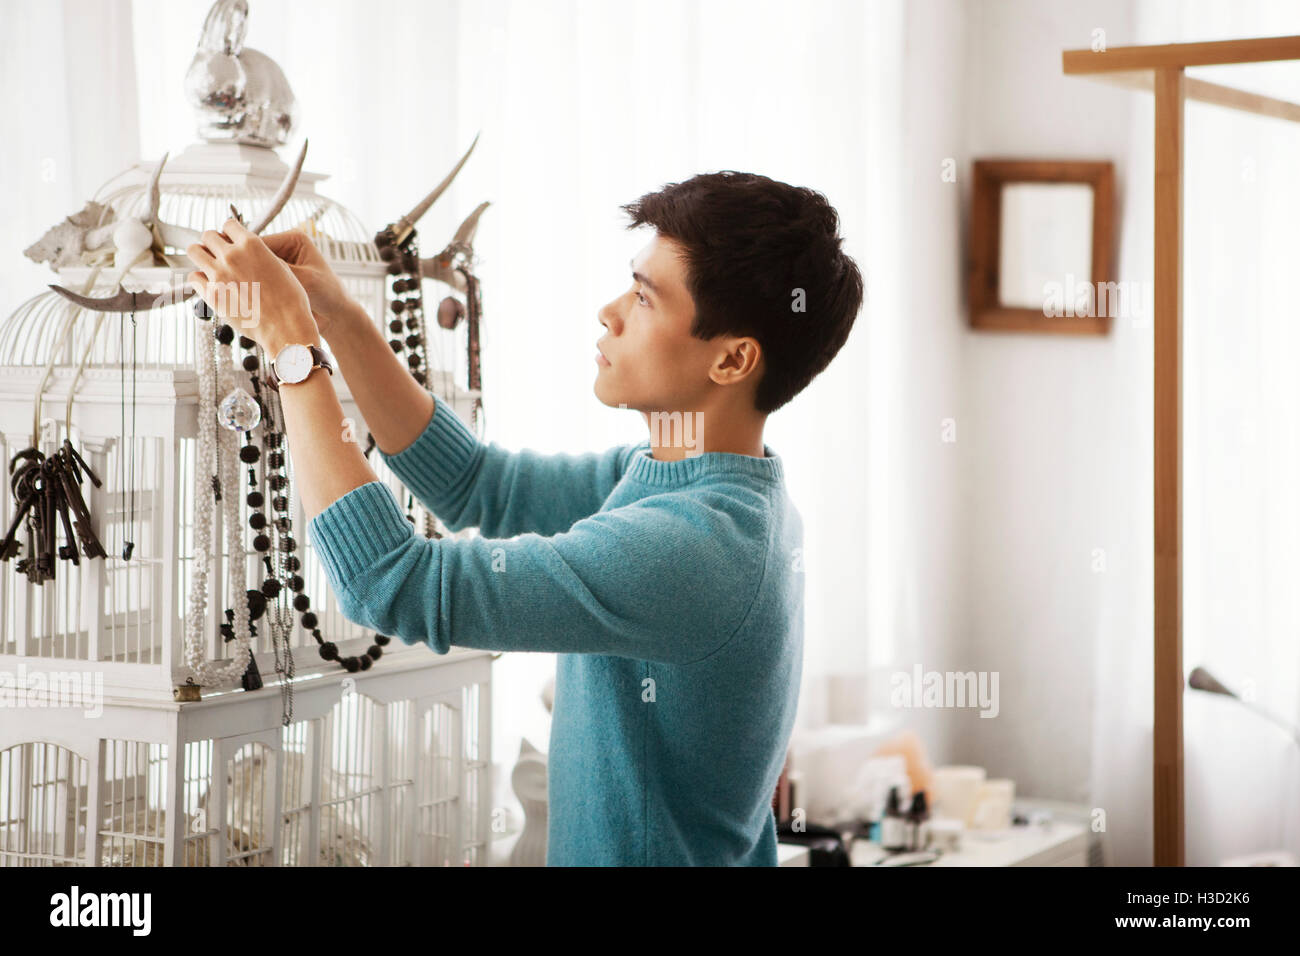 Side view of man decorating house - Stock Image